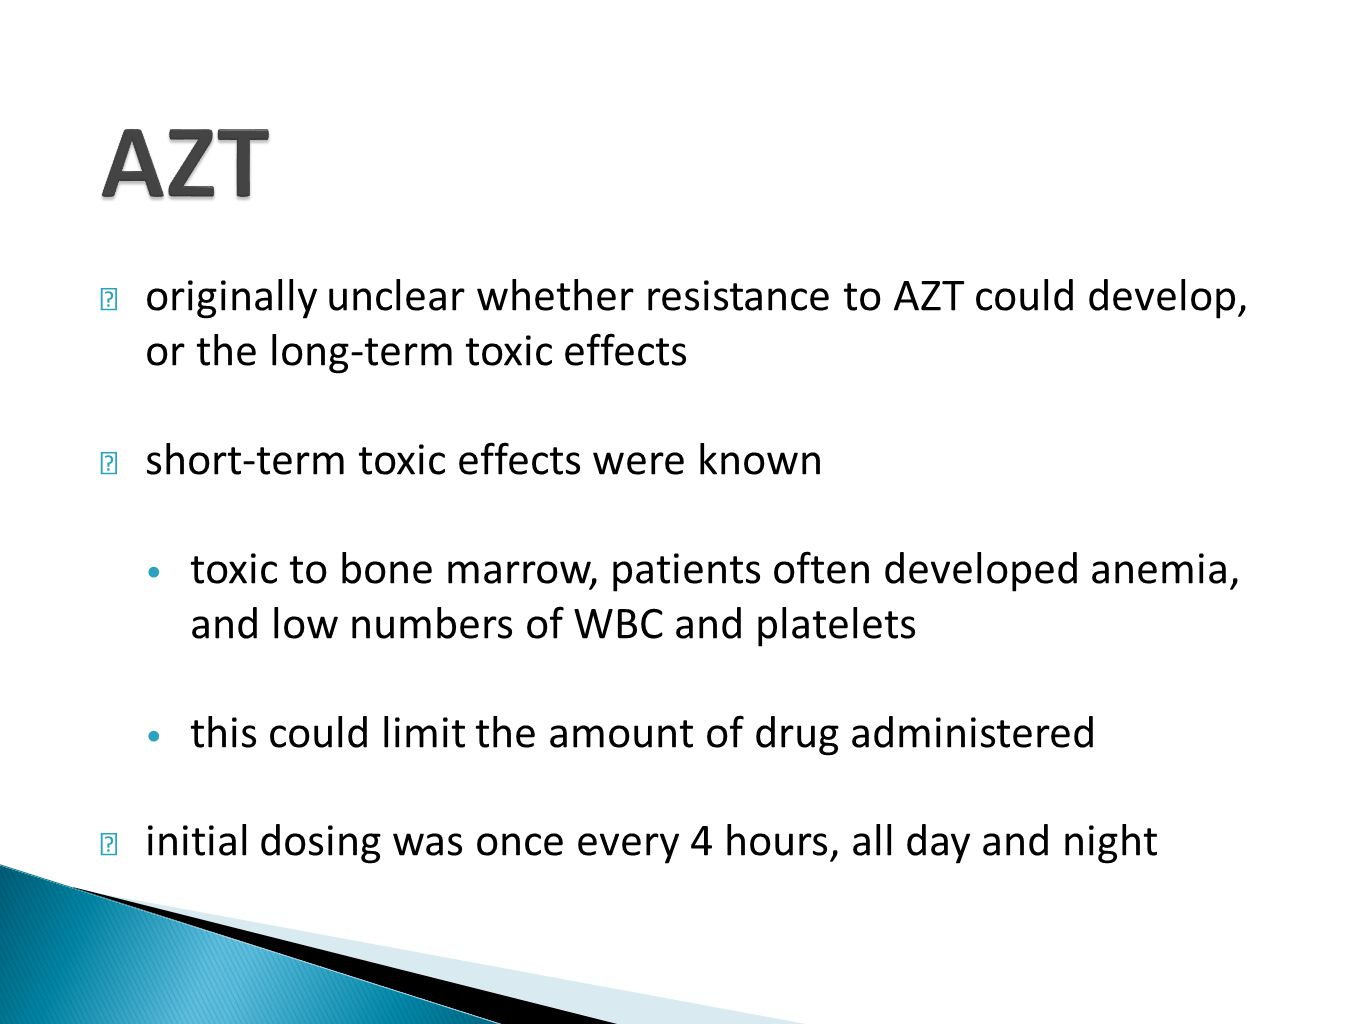 originally unclear whether resistance to AZT could develop, or the long-term toxic effects short-term toxic effects were known toxic to bone marrow, patients often developed anemia, and low numbers of WBC and platelets this could limit the amount of drug administered initial dosing was once every 4 hours, all day and night